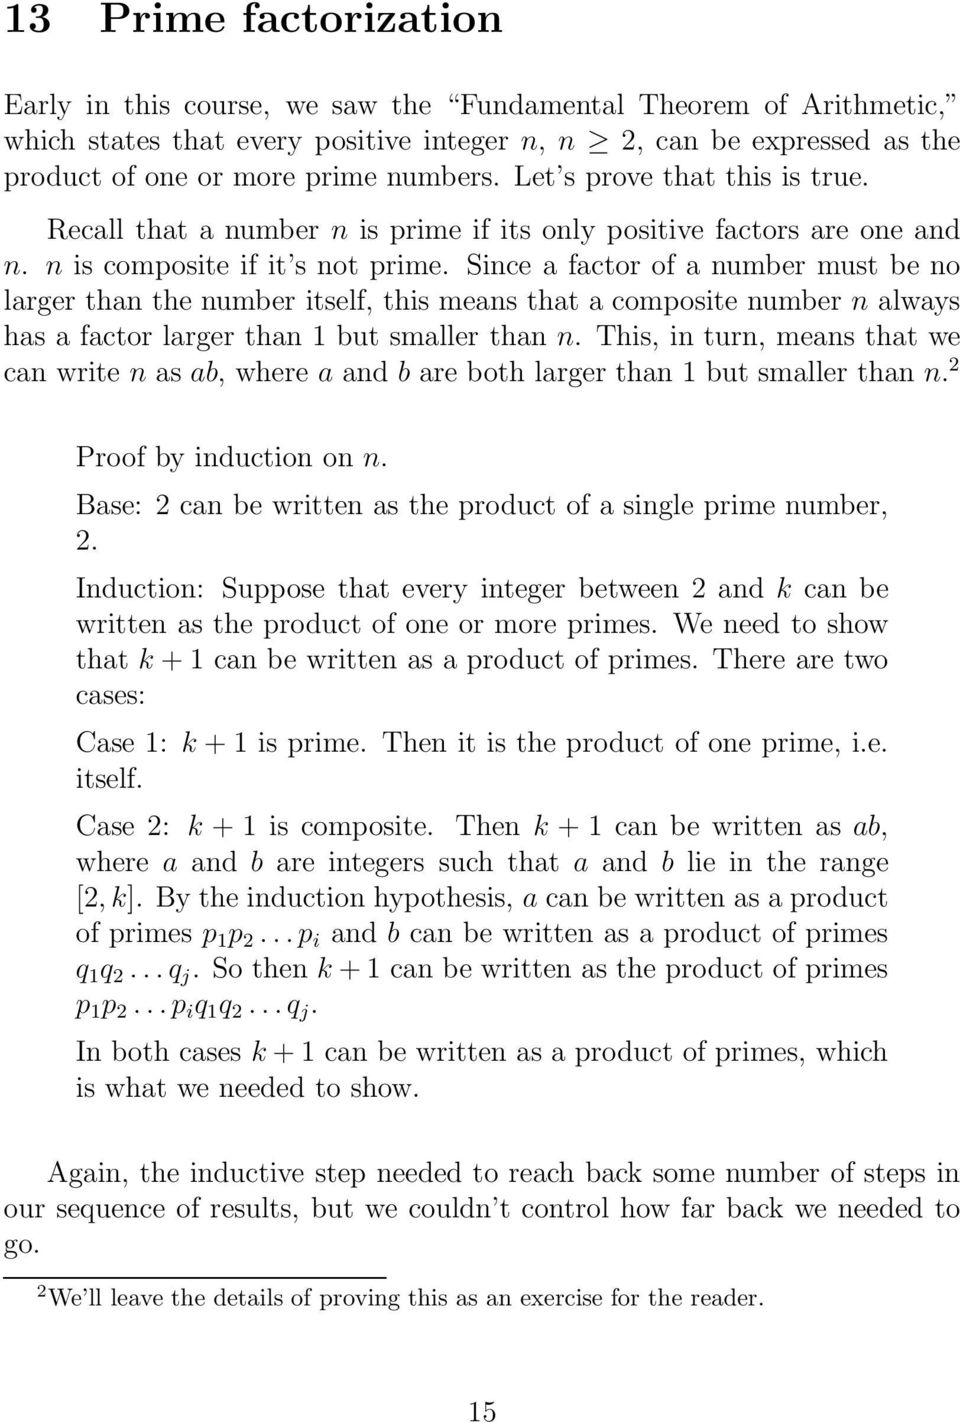 Since a factor of a number must be no larger than the number itself, this means that a composite number n always has a factor larger than 1 but smaller than n.